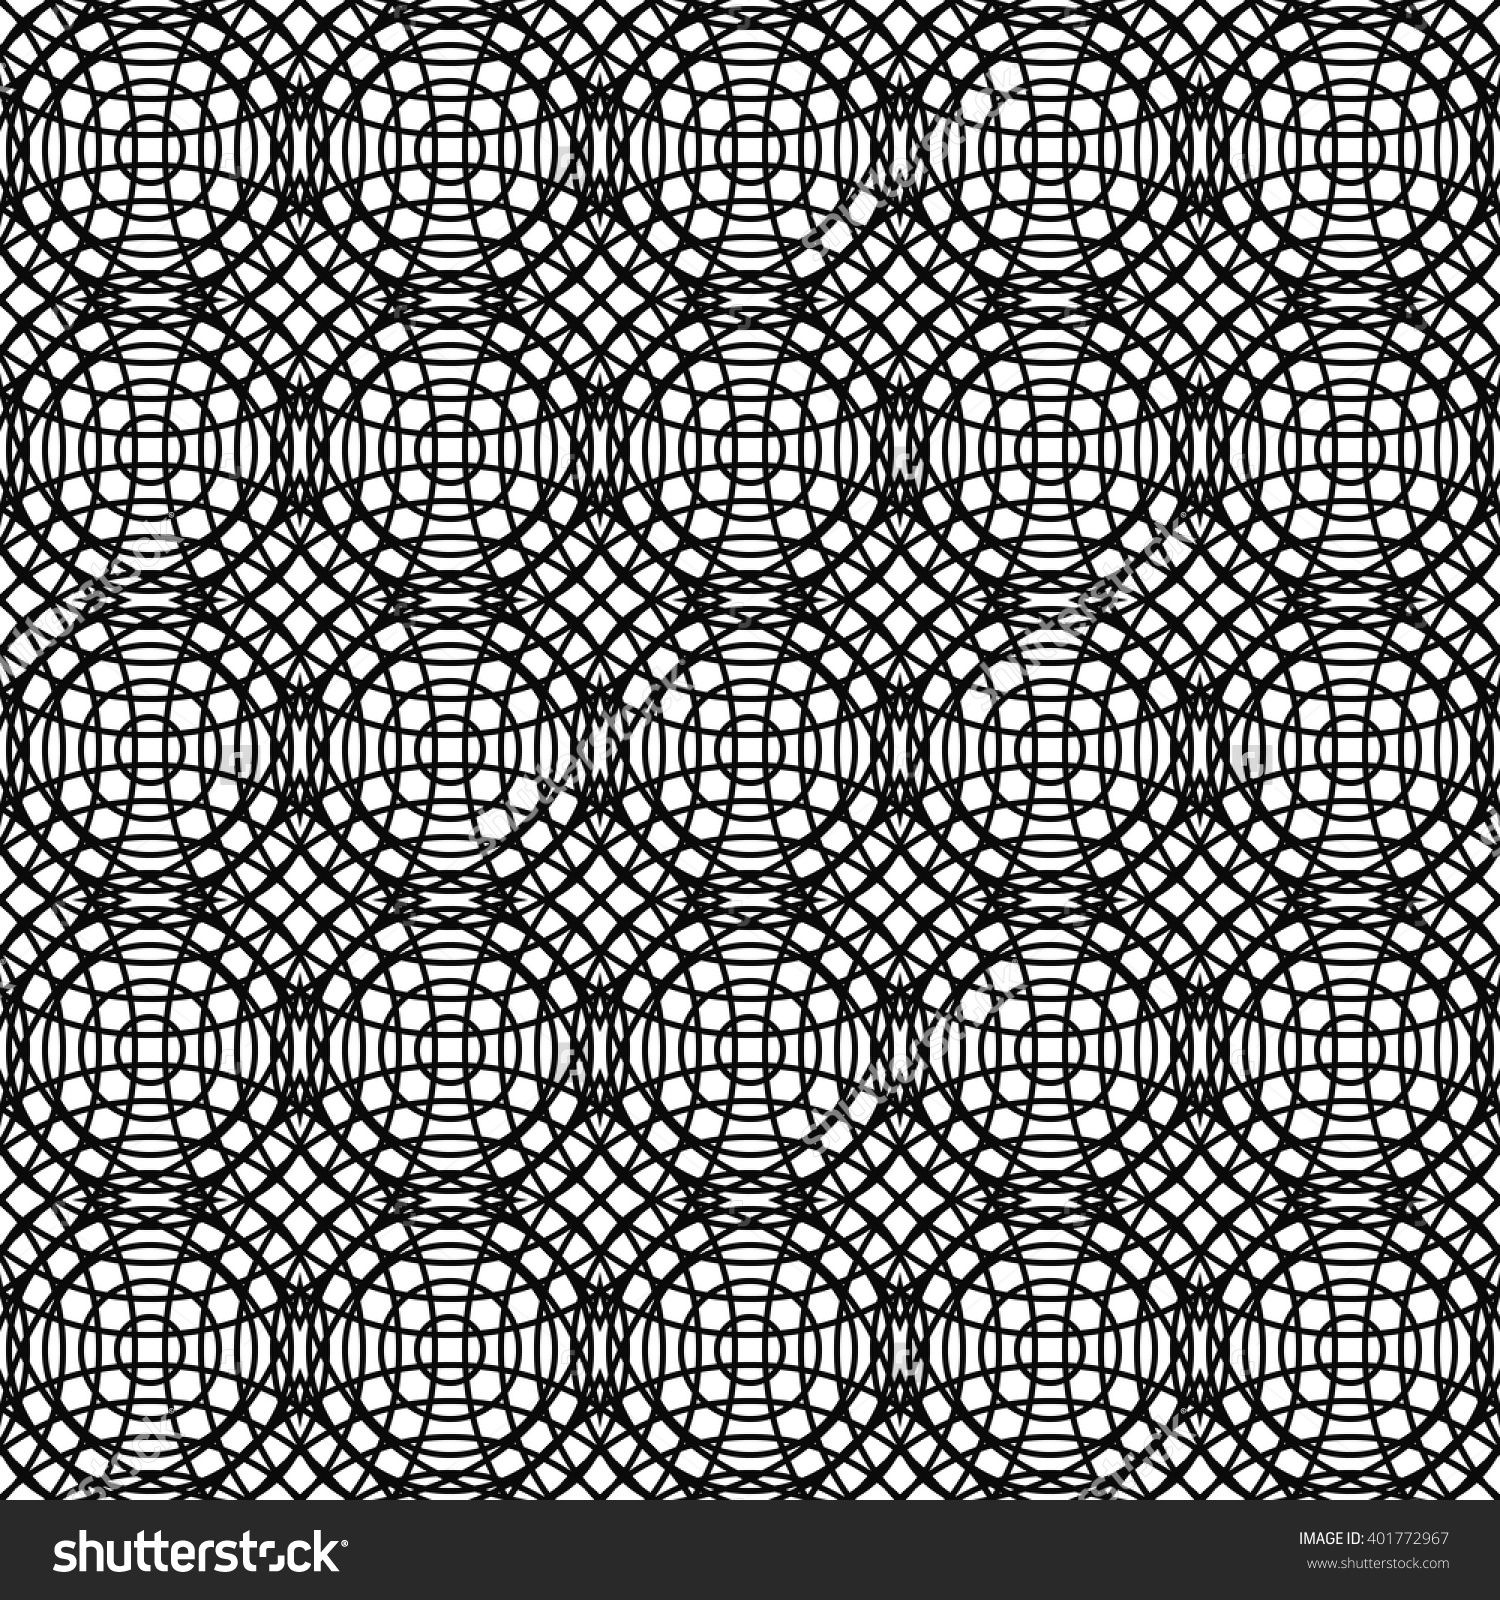 Repeating Monochrome Vector Curved Line Pattern Design Background - 401772967 : Shutterstock